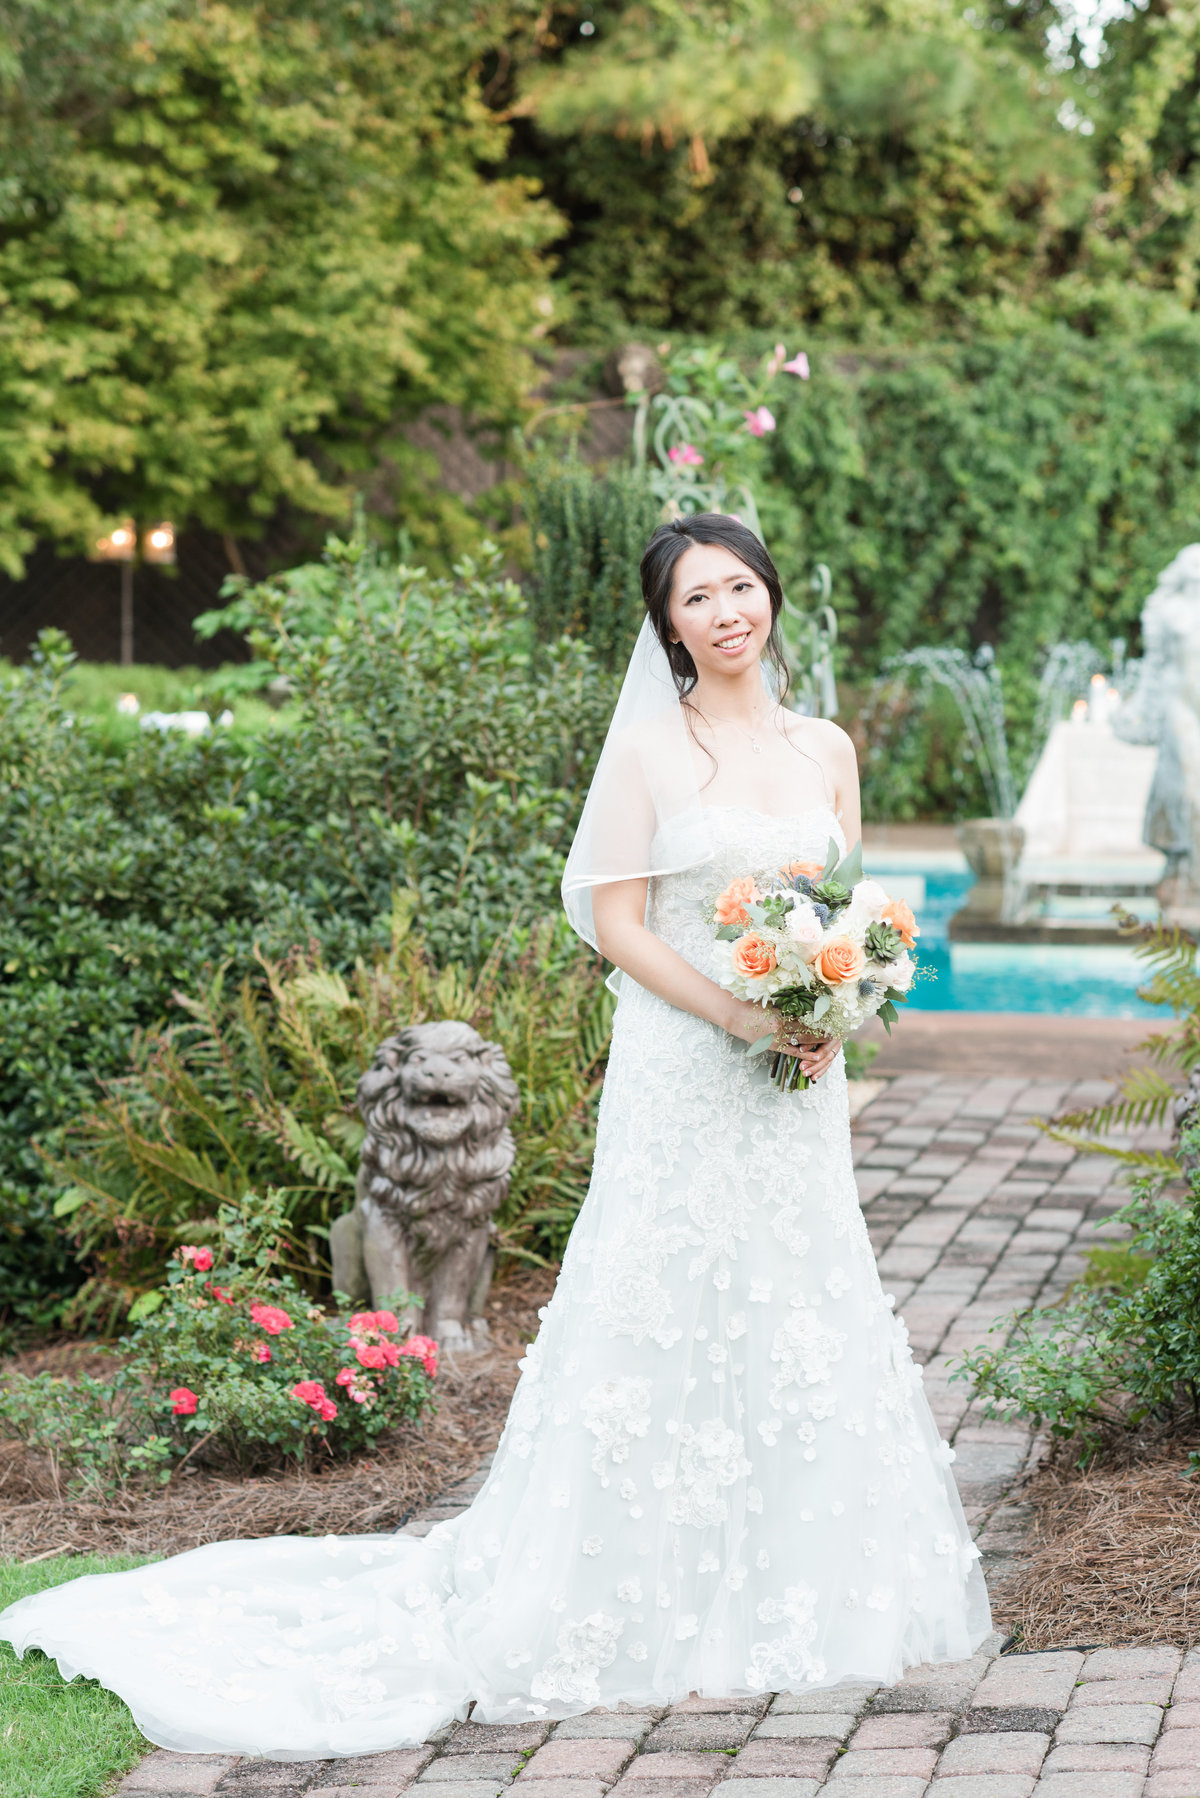 a bride wearing a strapless light blue wedding dress with mid-length veil holding white and orange wedding bouquet in front of an elegant little garden with pond at Barclay Villa